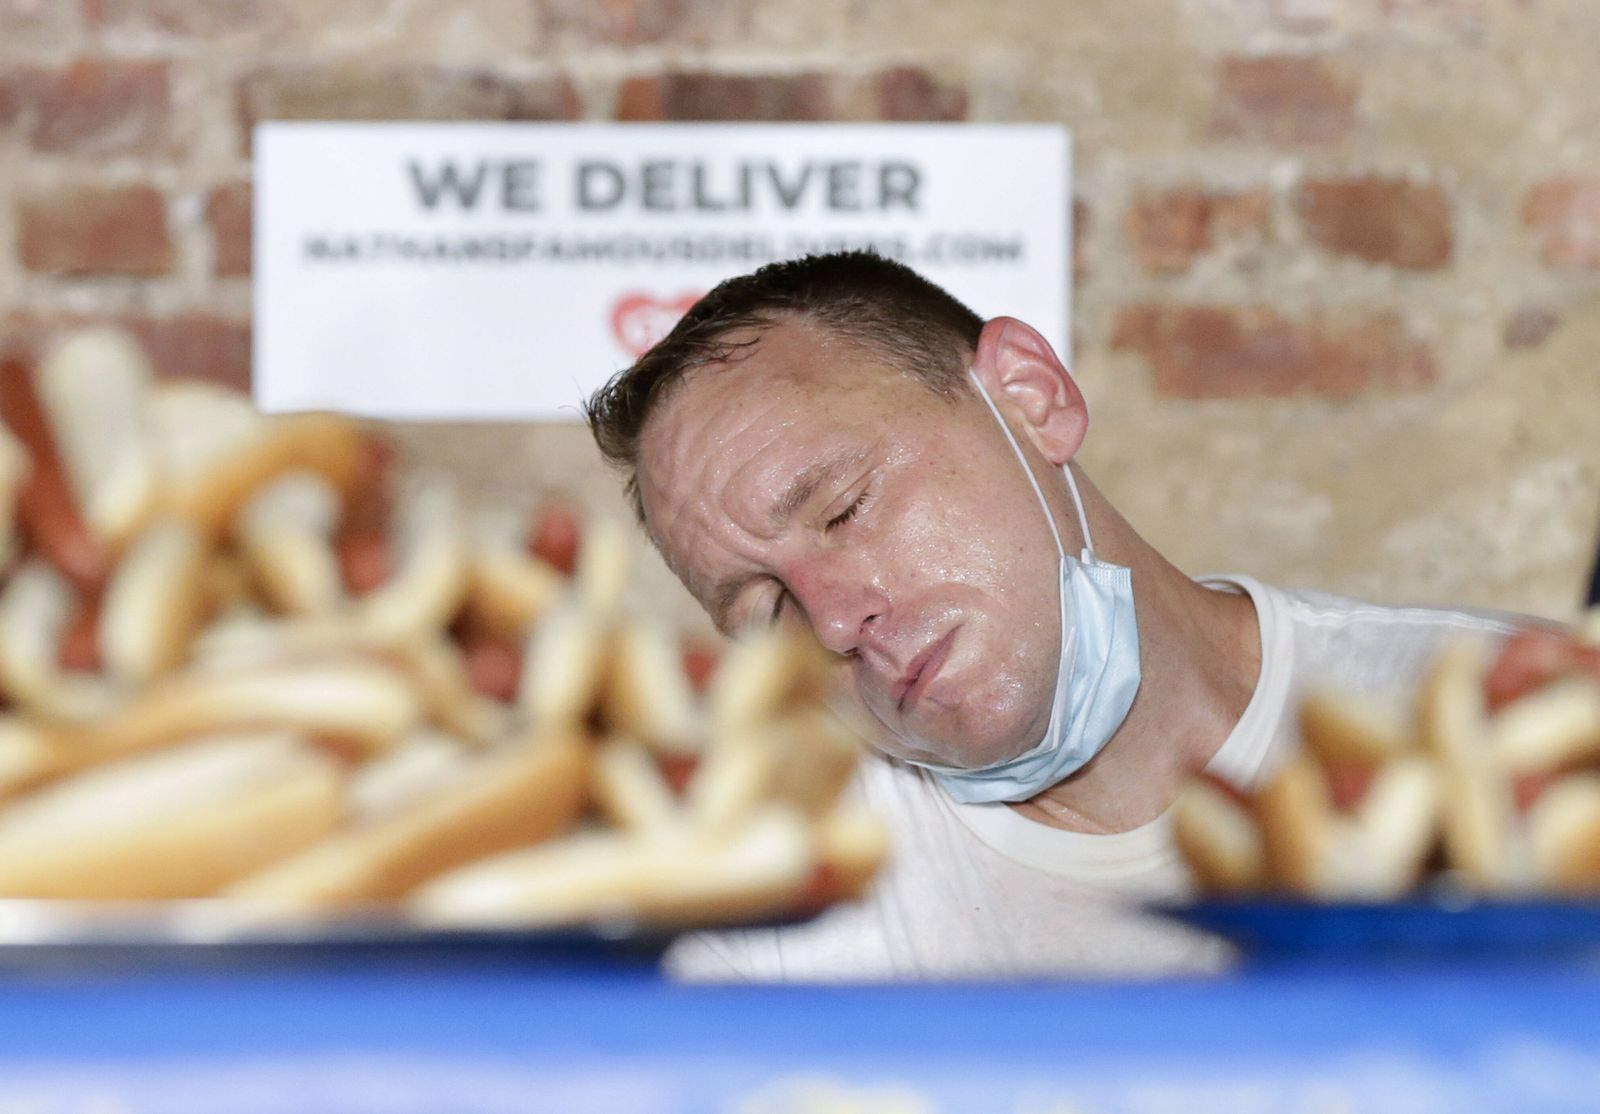 The 1-ranked eater in the world Joey Chestnut closes his eyes while waiting for the belt ceremony after winning the 104